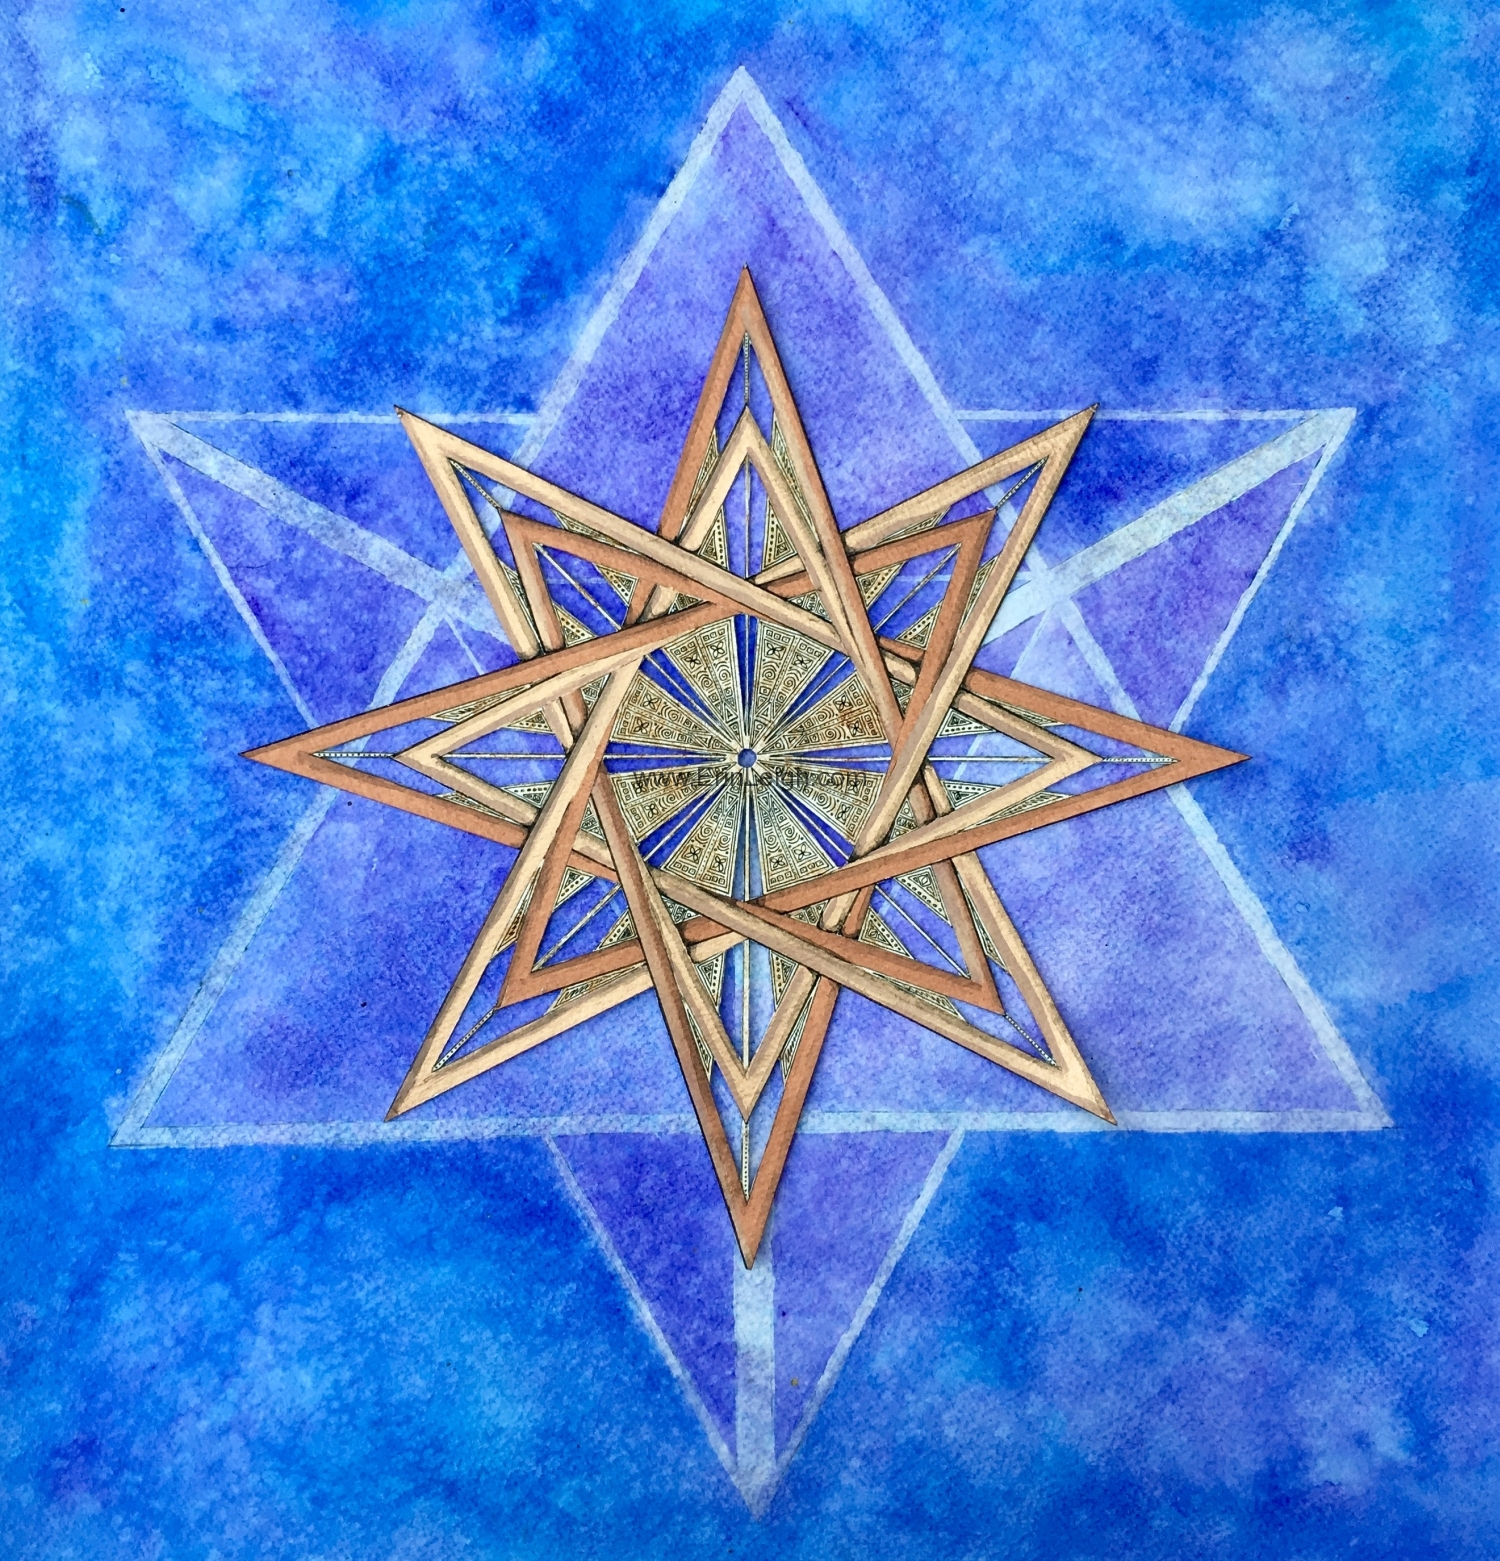 8 pointed stars by Erin Leigh